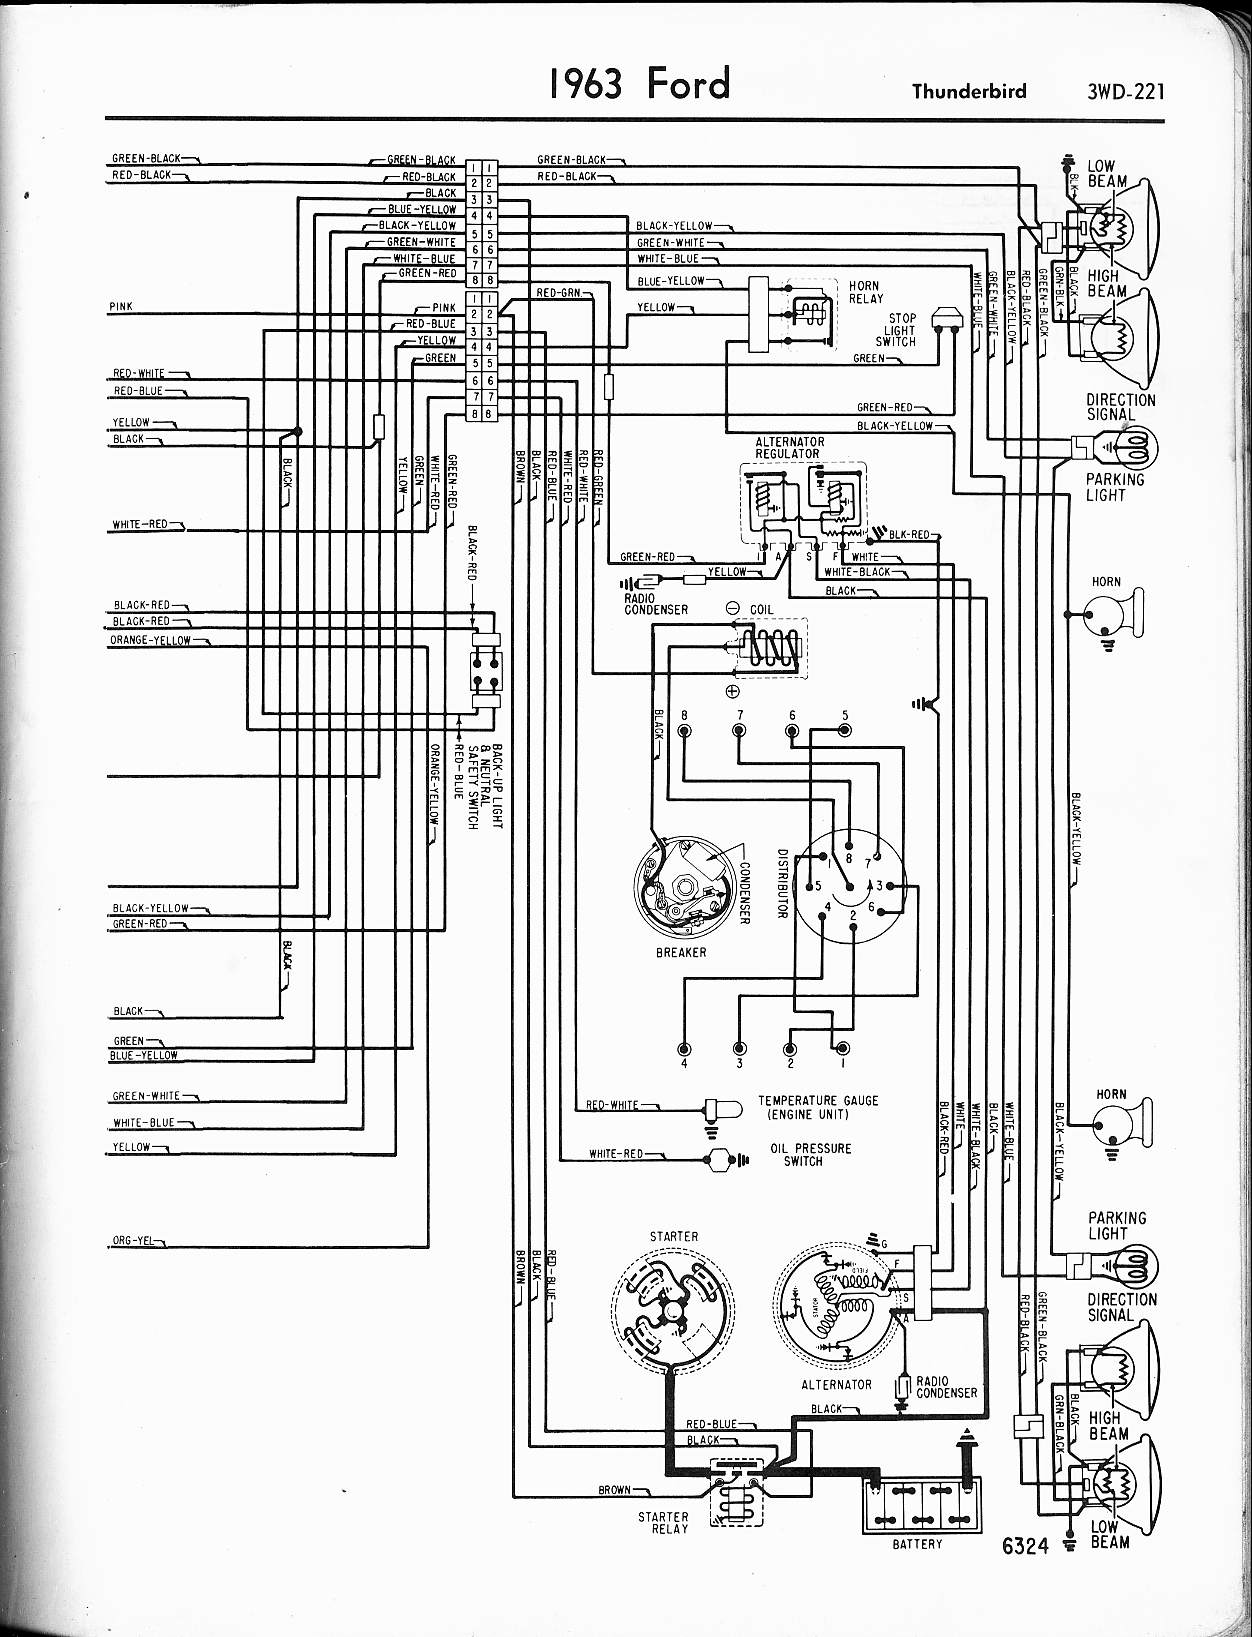 1984 Ford Thunderbird Wiring Diagram V6 Trusted 1963 Gmc Explained Diagrams Chevy Camaro